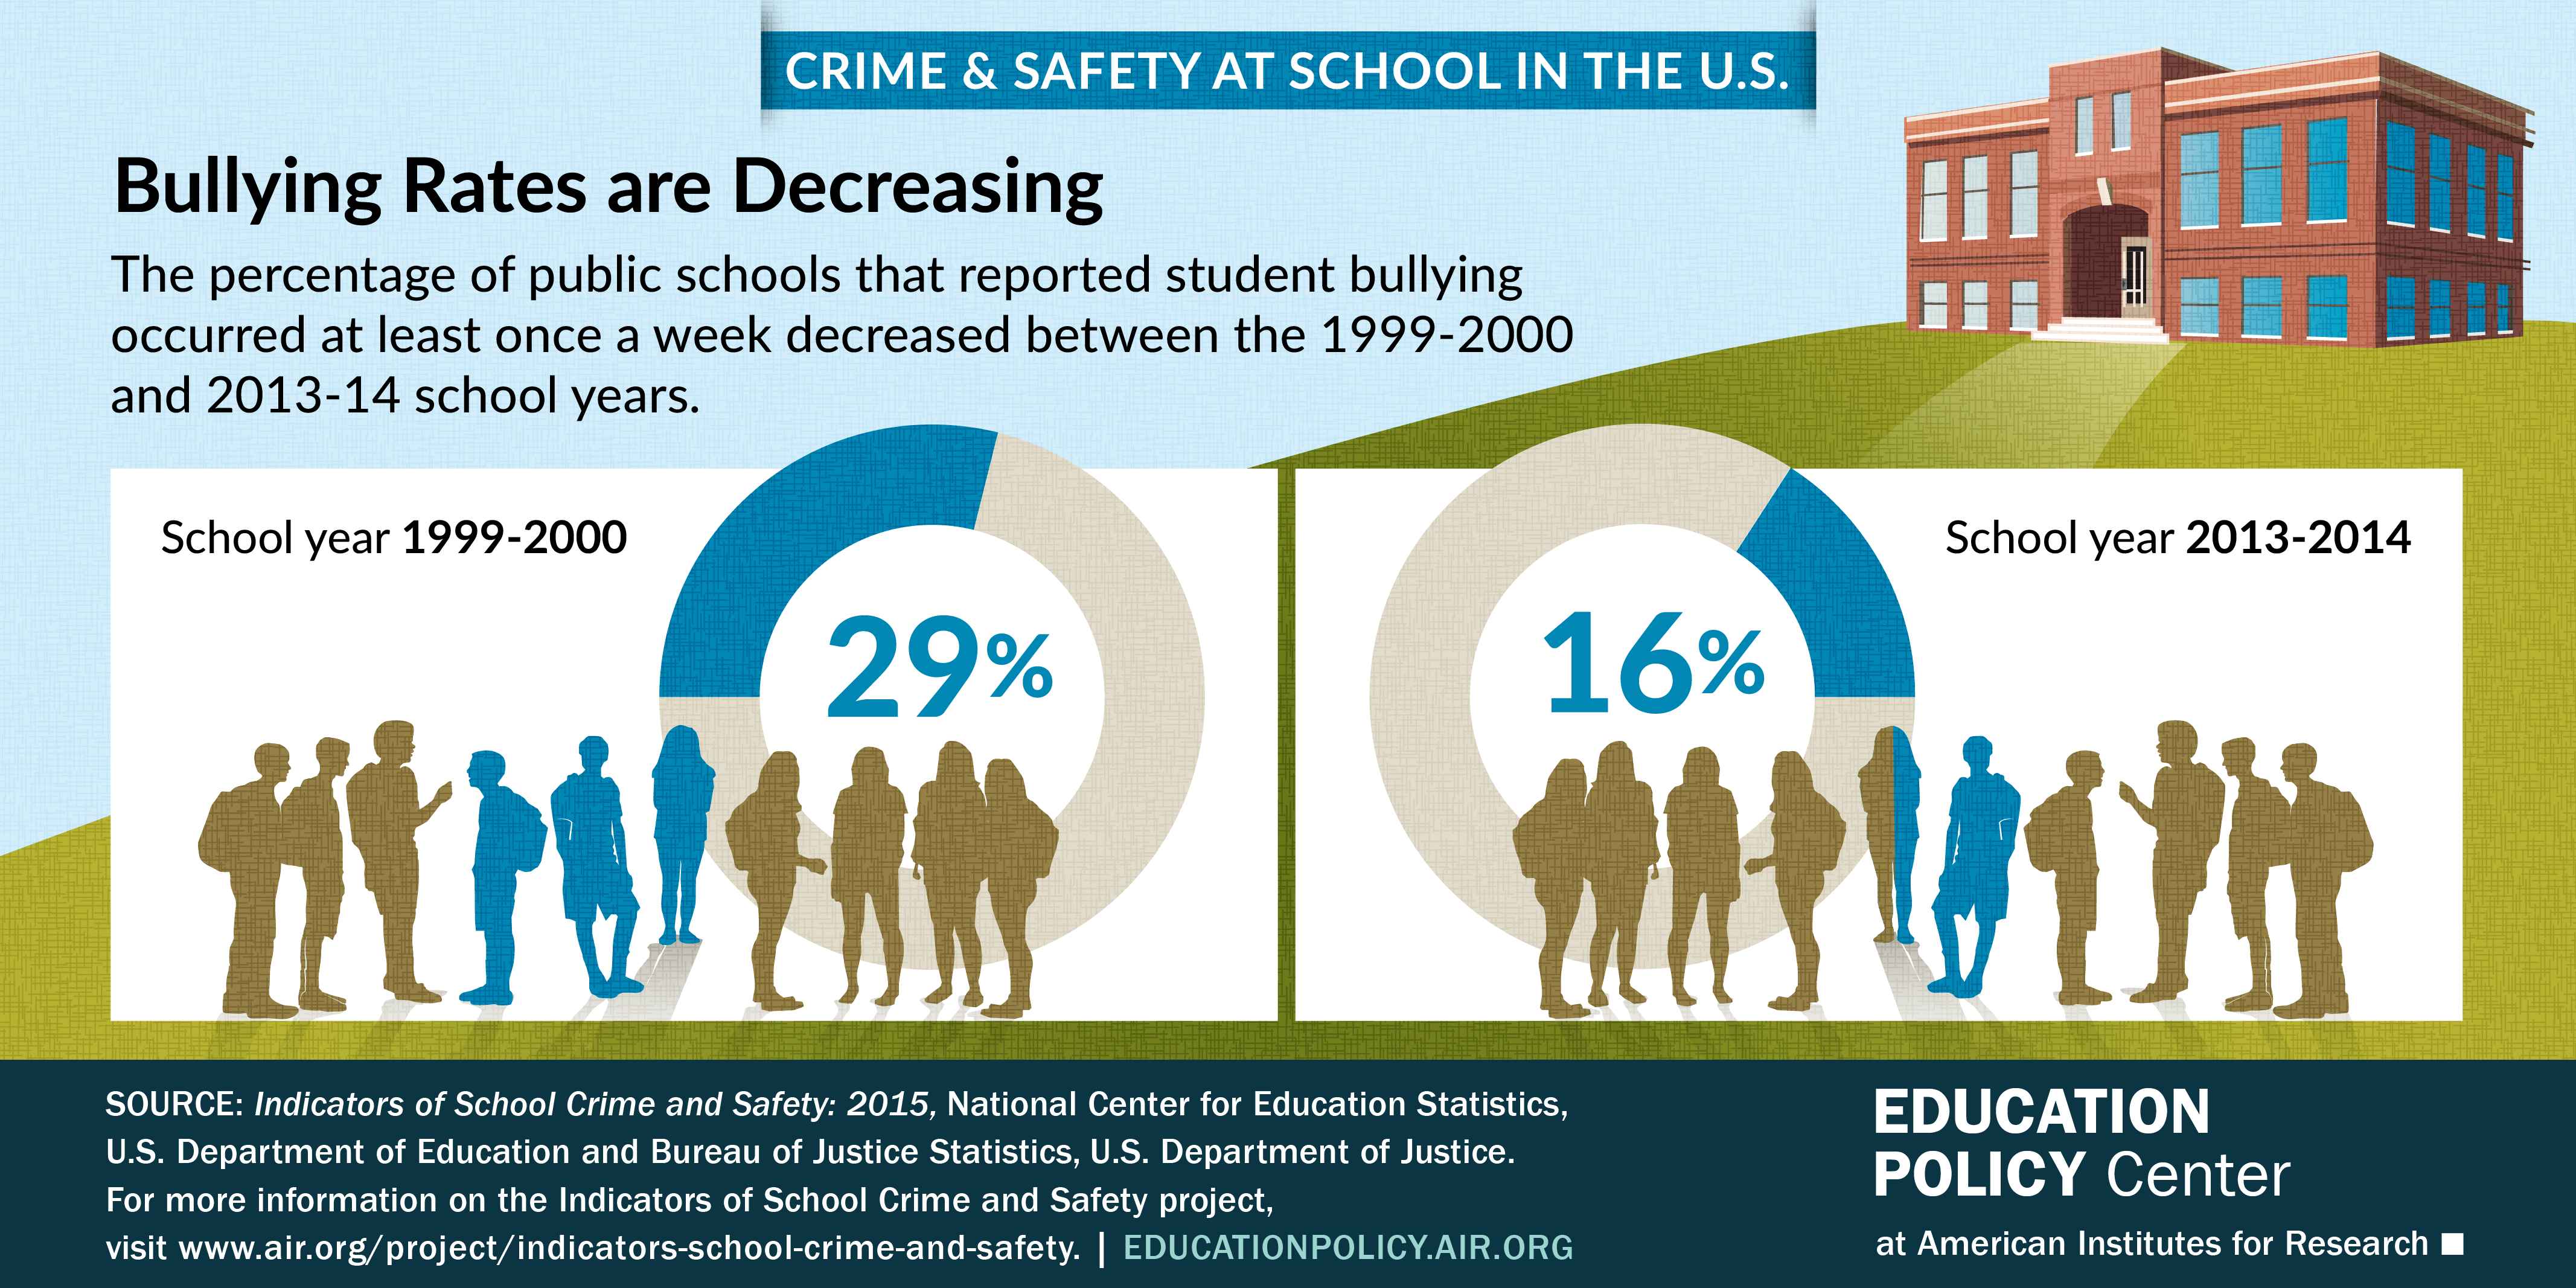 Infographic shows that bullying rates are decreasing in public schools from 29% in 2000 to 16% in 2014.